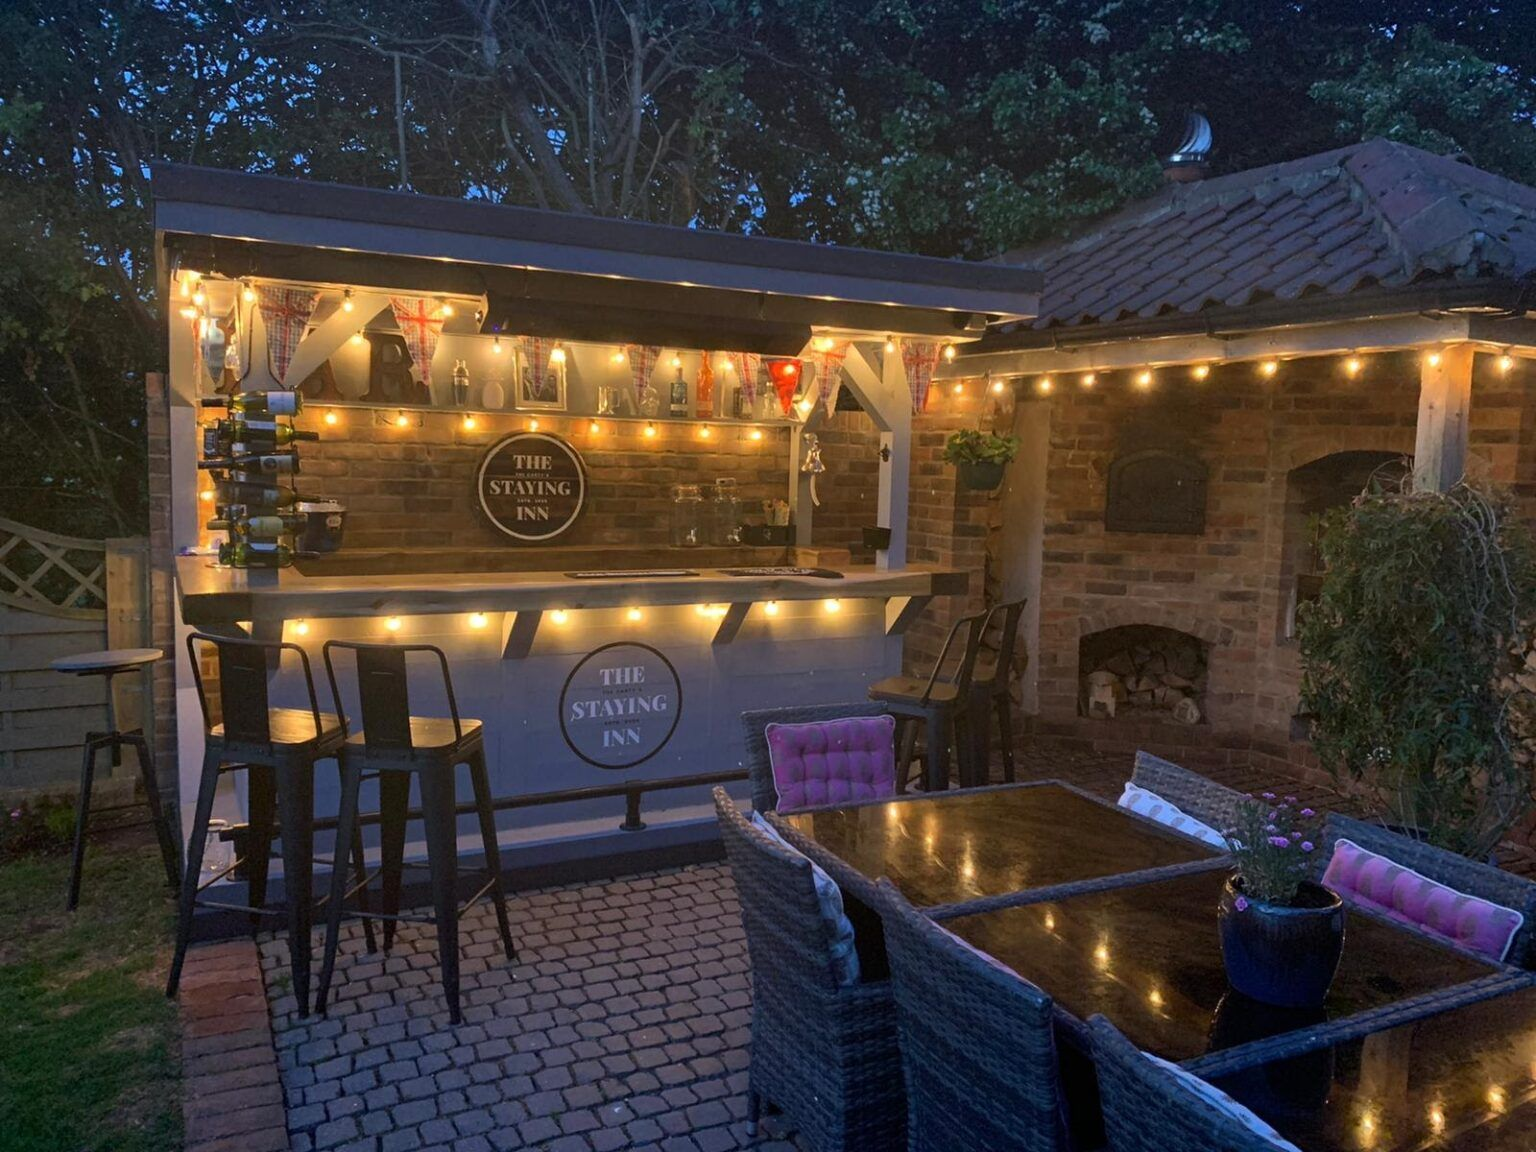 4 of the UK's best home bars - Page 4 of 4 - The Drinks Business